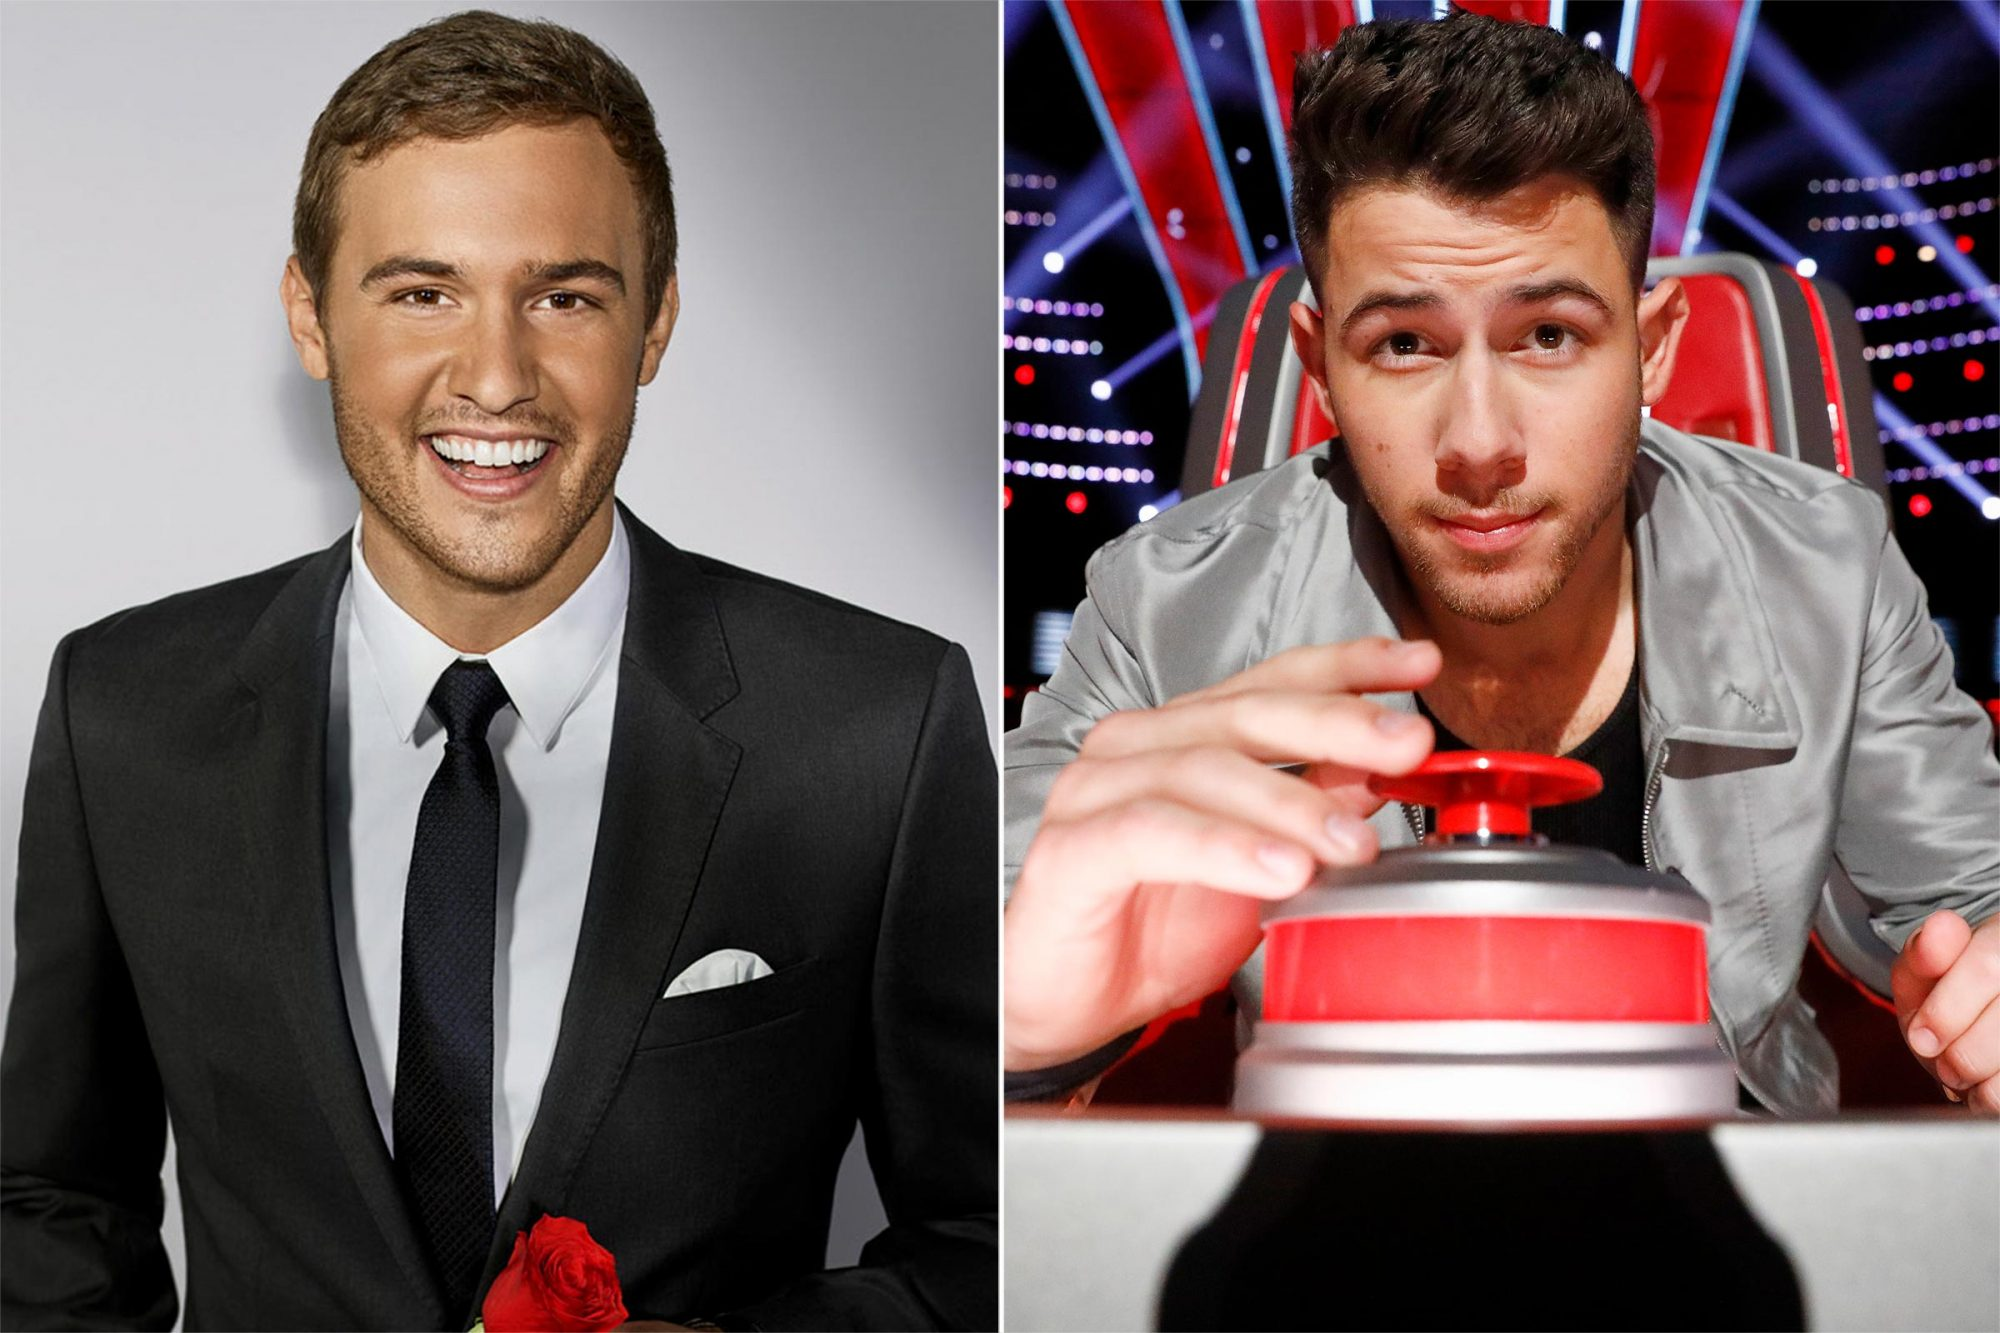 THE BACHELOR / THE VOICE